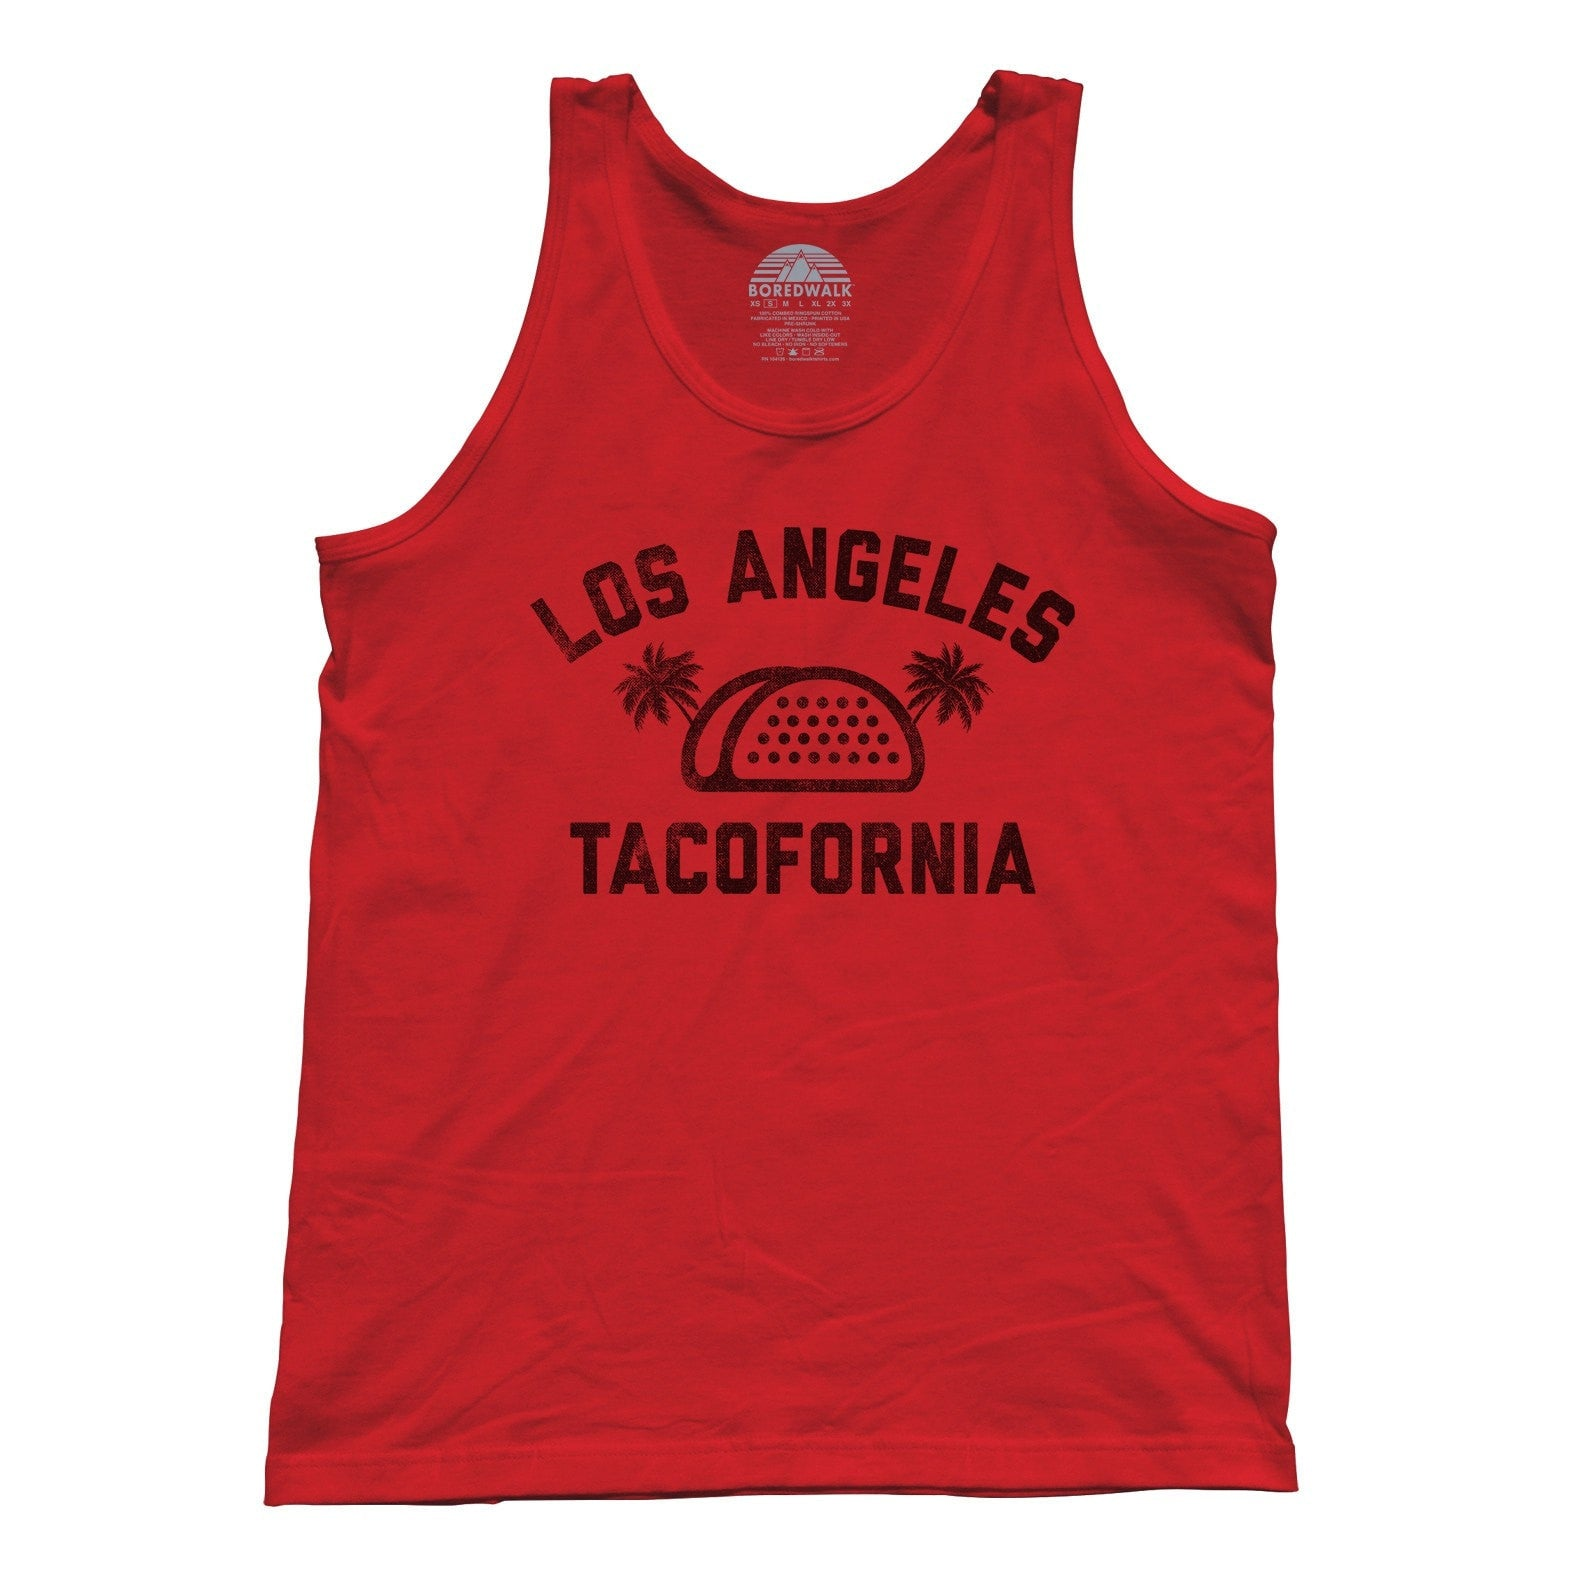 Unisex Los Angeles Tacofornia Tank Top